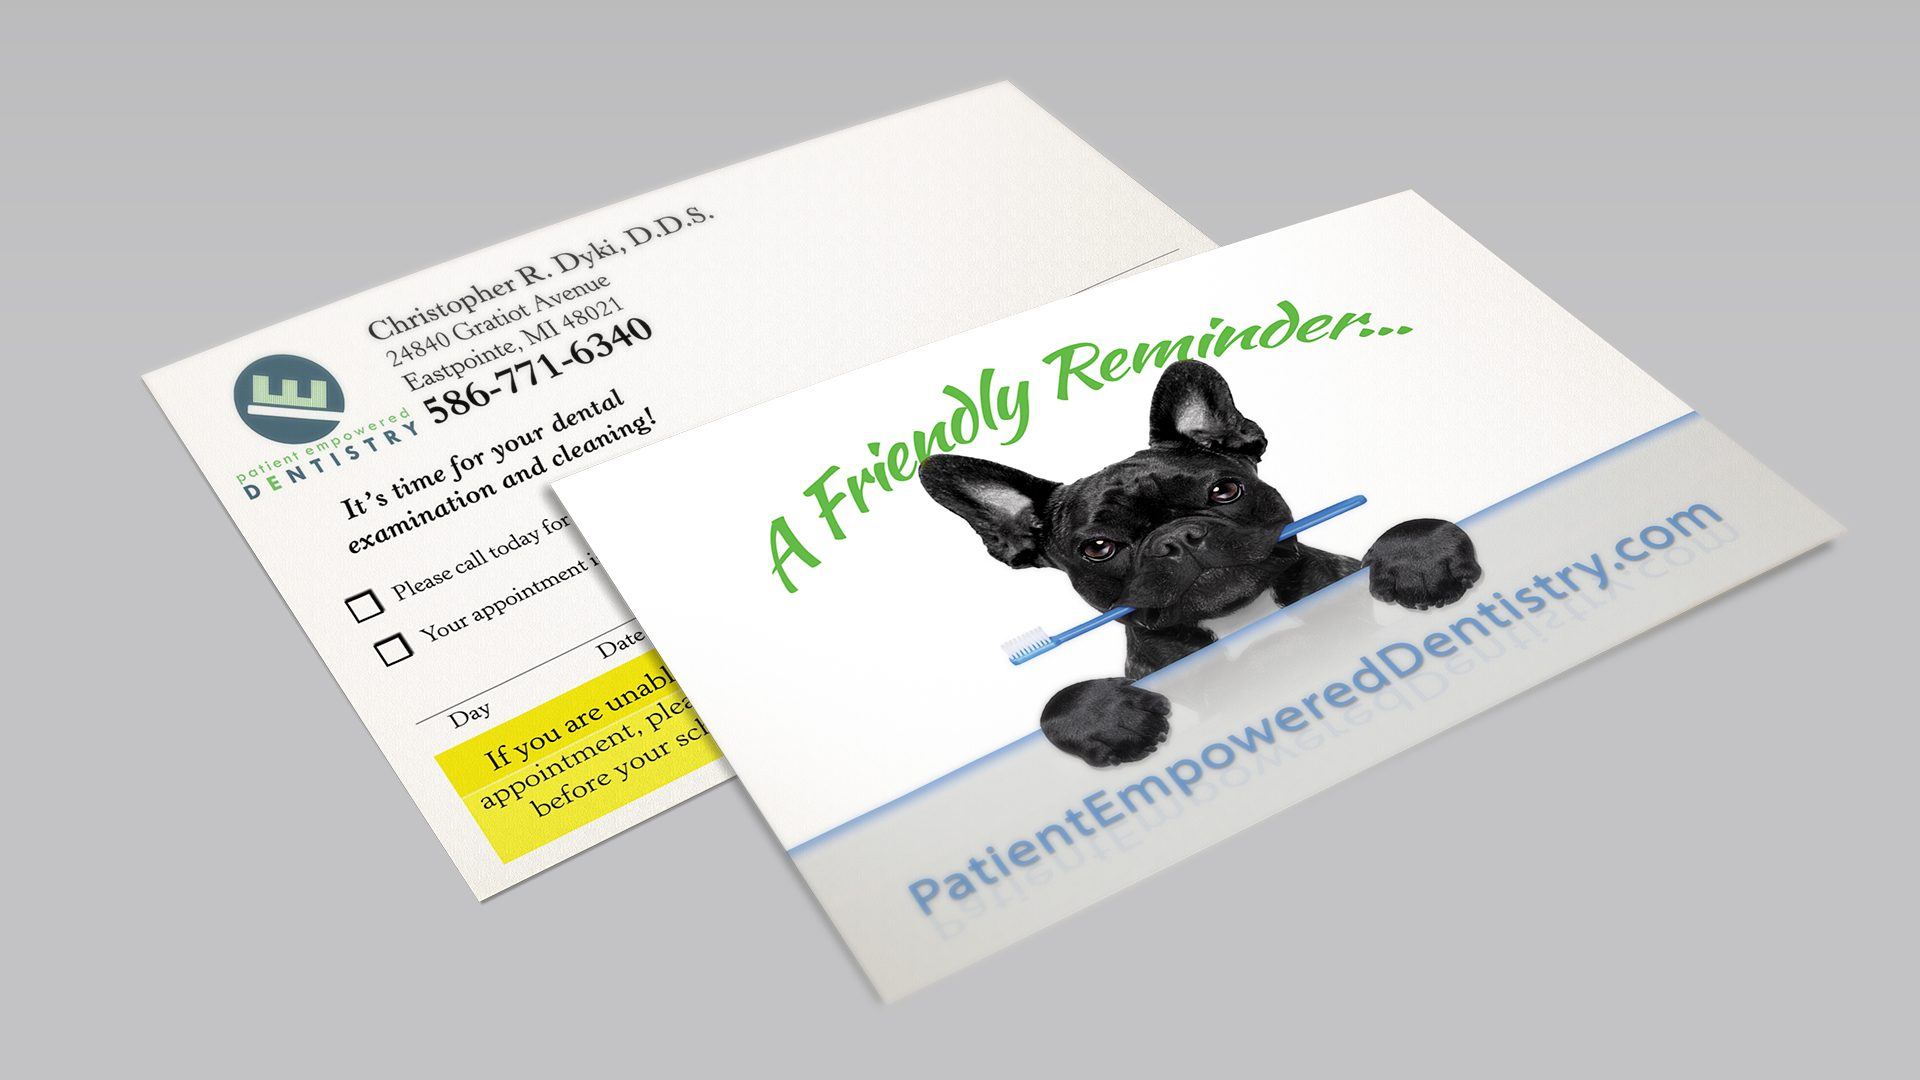 Patient Empowered Dentistry - Reminder Postcard Mockup 02